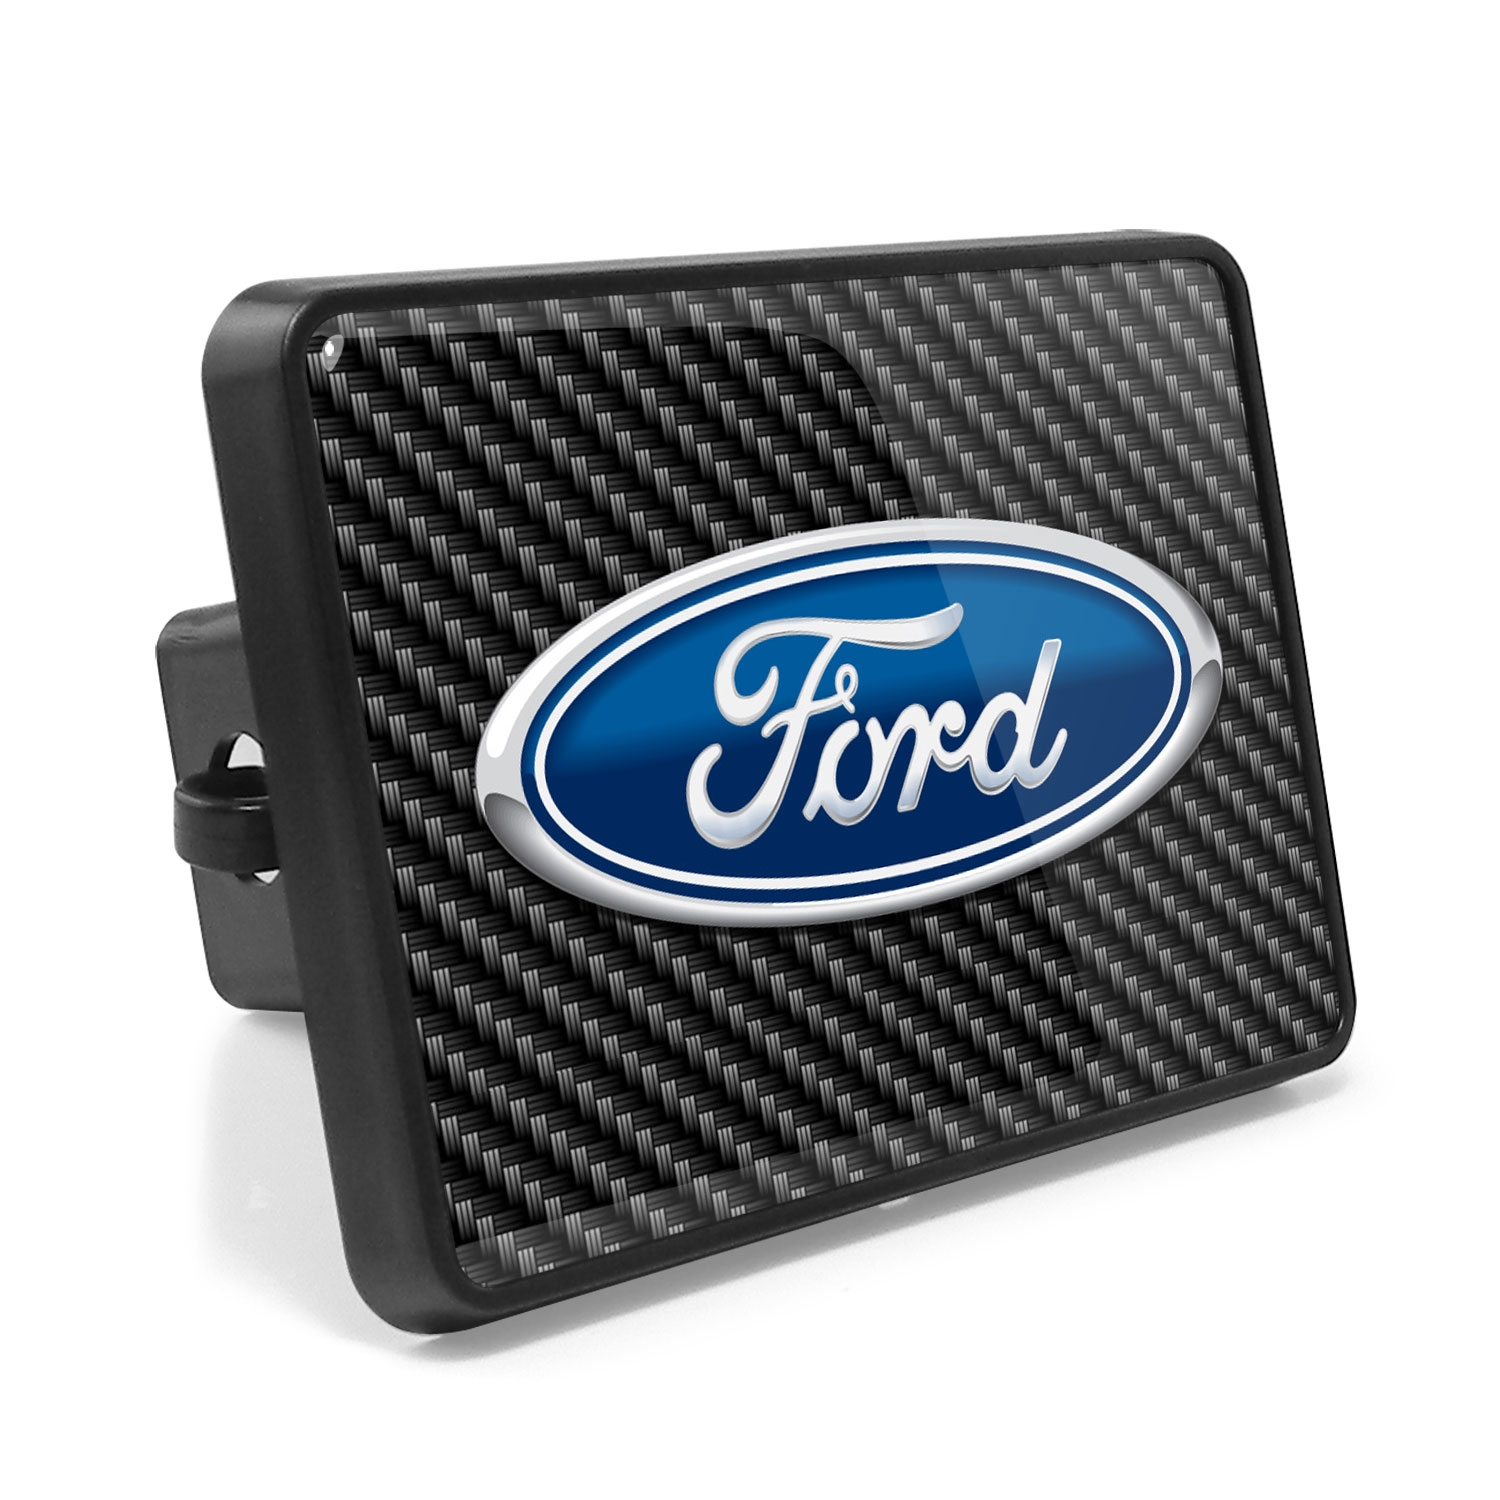 Ford Logo Carbon Fiber Look UV Graphic Metal Plate on ABS Plastic 2 inch Tow Hitch Cover